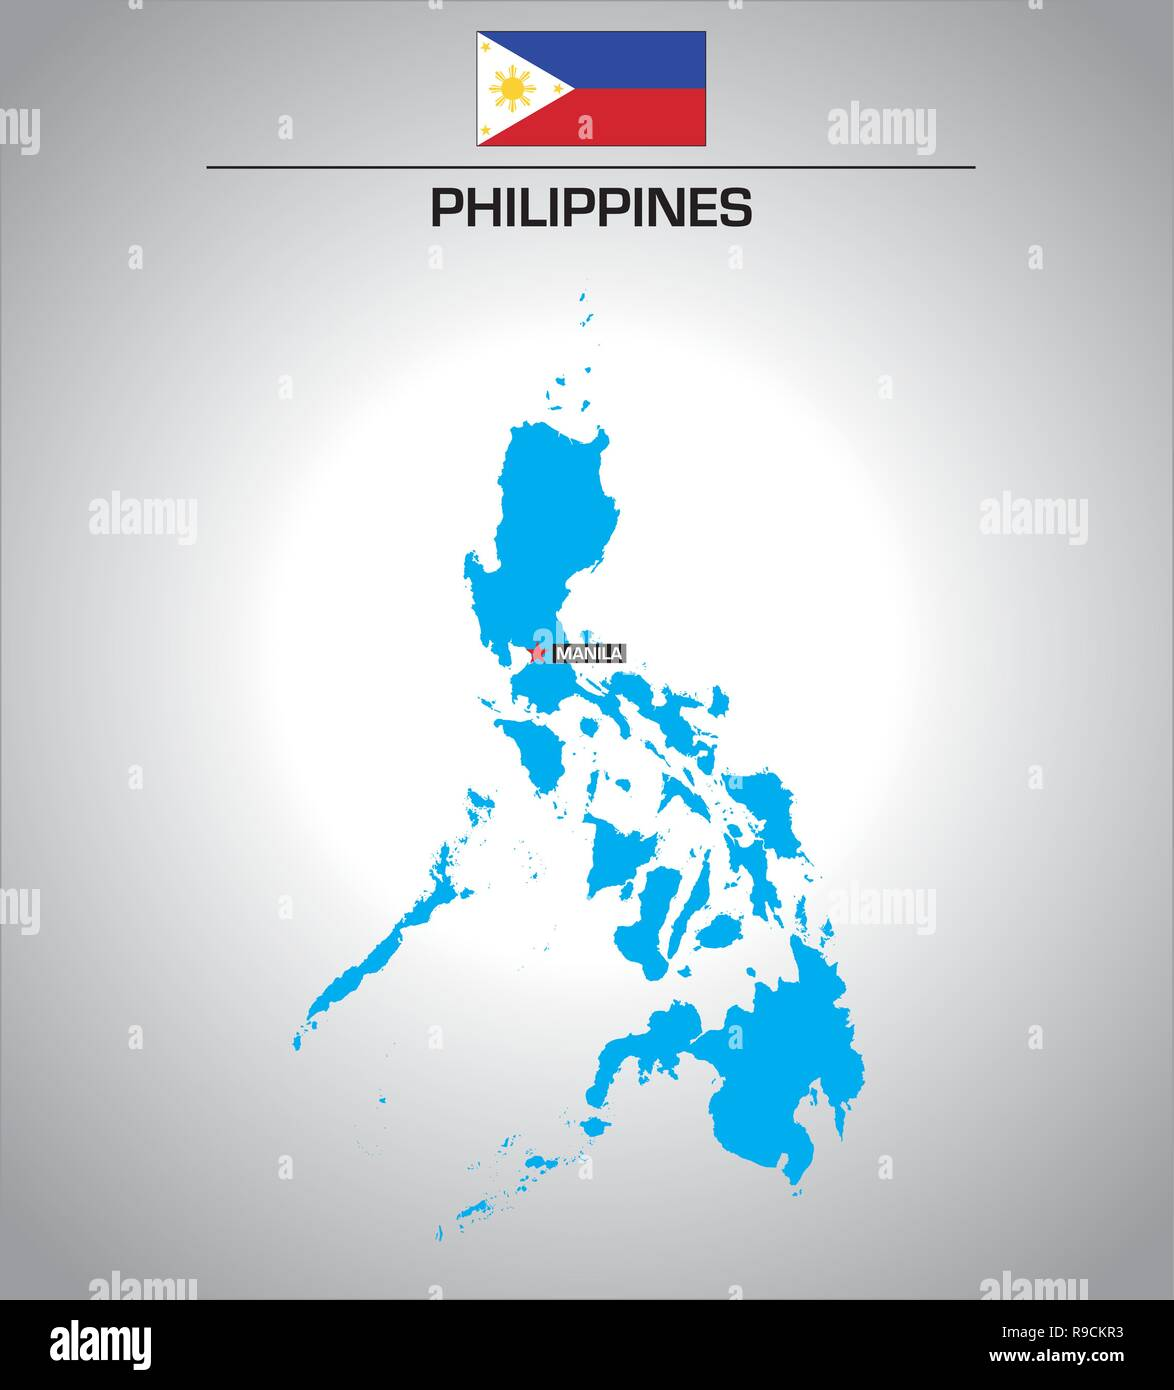 simple vector outline map of philippines with flag - Stock Image